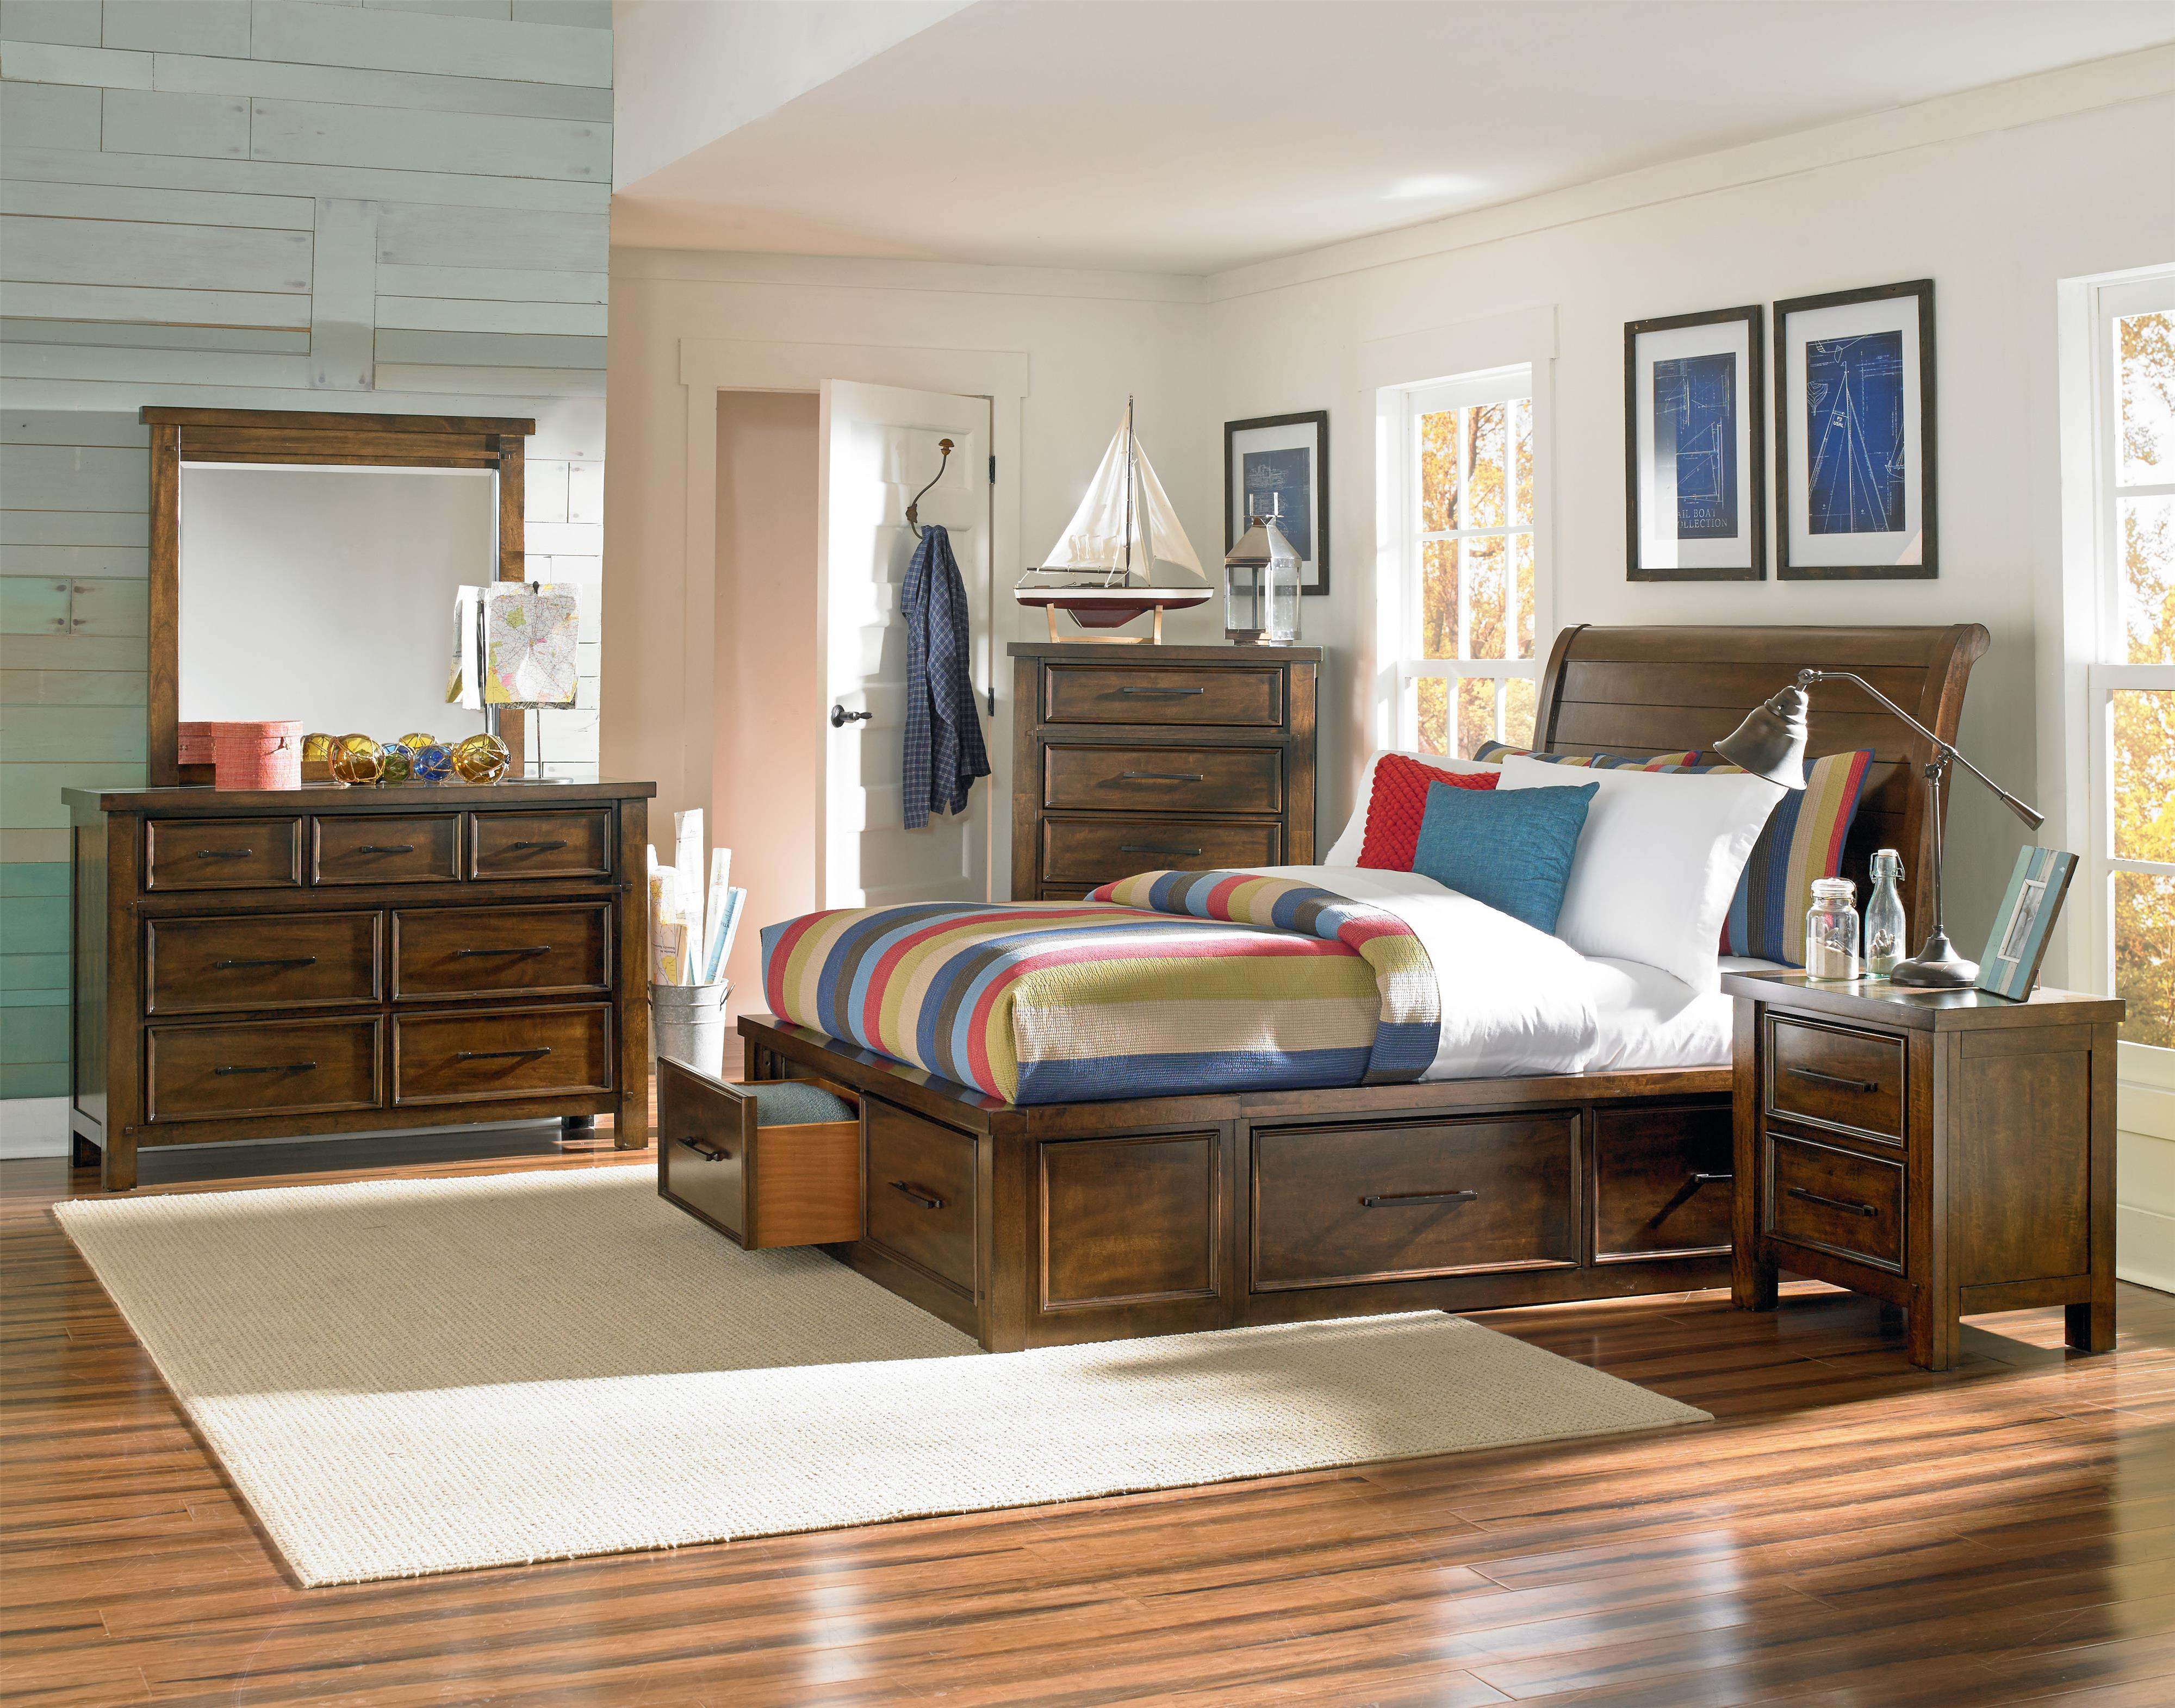 Standard Furniture Cameron Youth Full Bedroom Group - Item Number: 940 F Bedroom Group 1